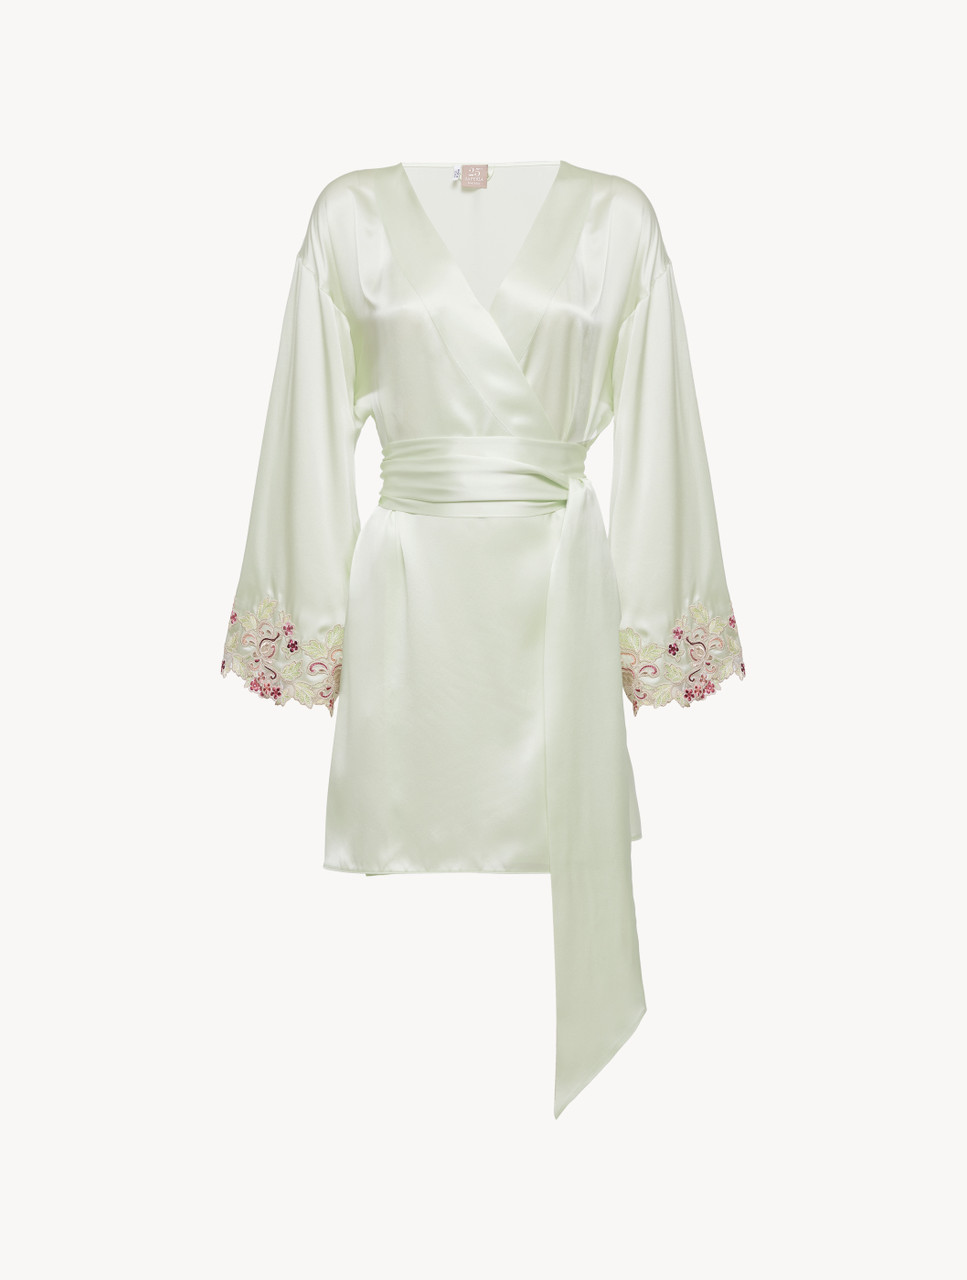 Short Robe In Pale Green Silk With Embroidered Tulle La Perla Uk